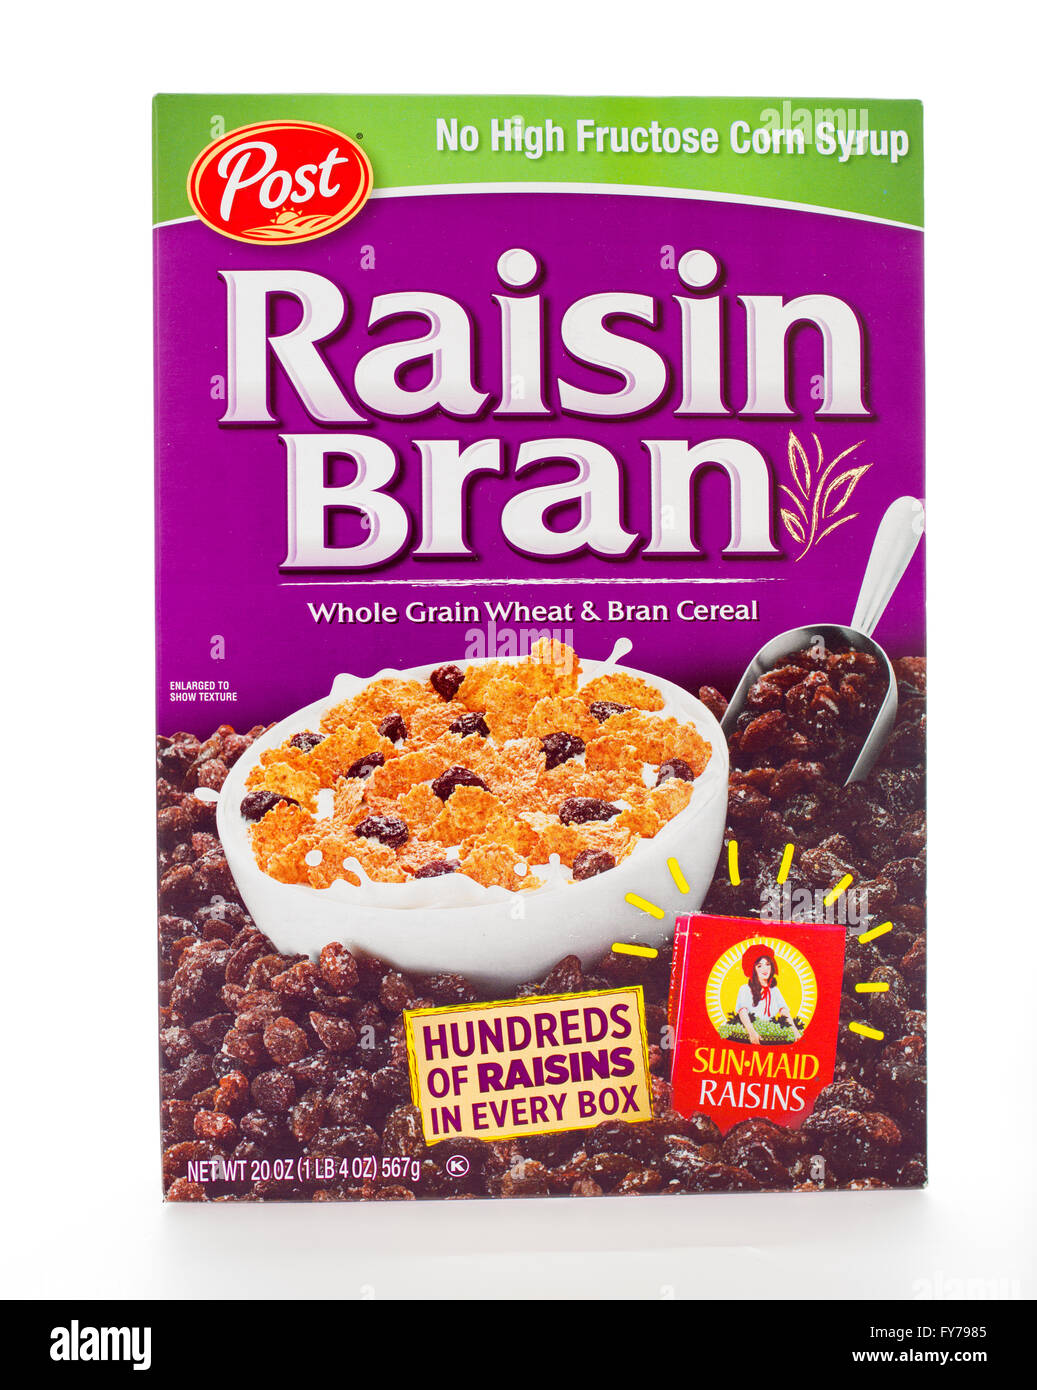 Winneconne, WI - 7 February 2015: Box of Raison Bran cereal a product of Post. Stock Photo